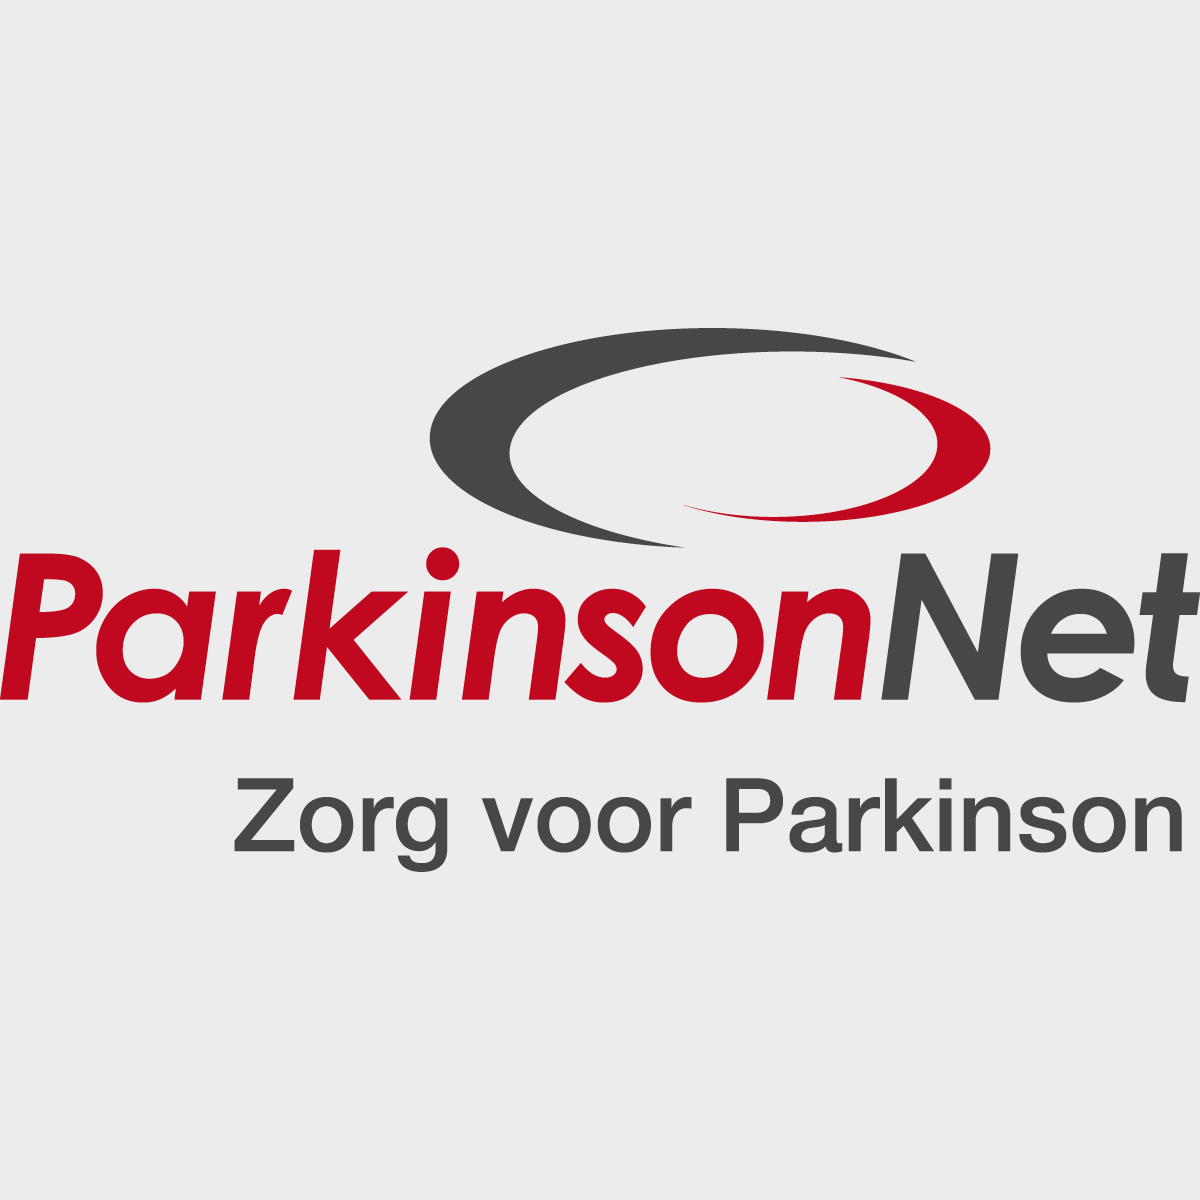 communicatiebureau Puntkomma Nijmegen - corporate identity ParkinsonNet